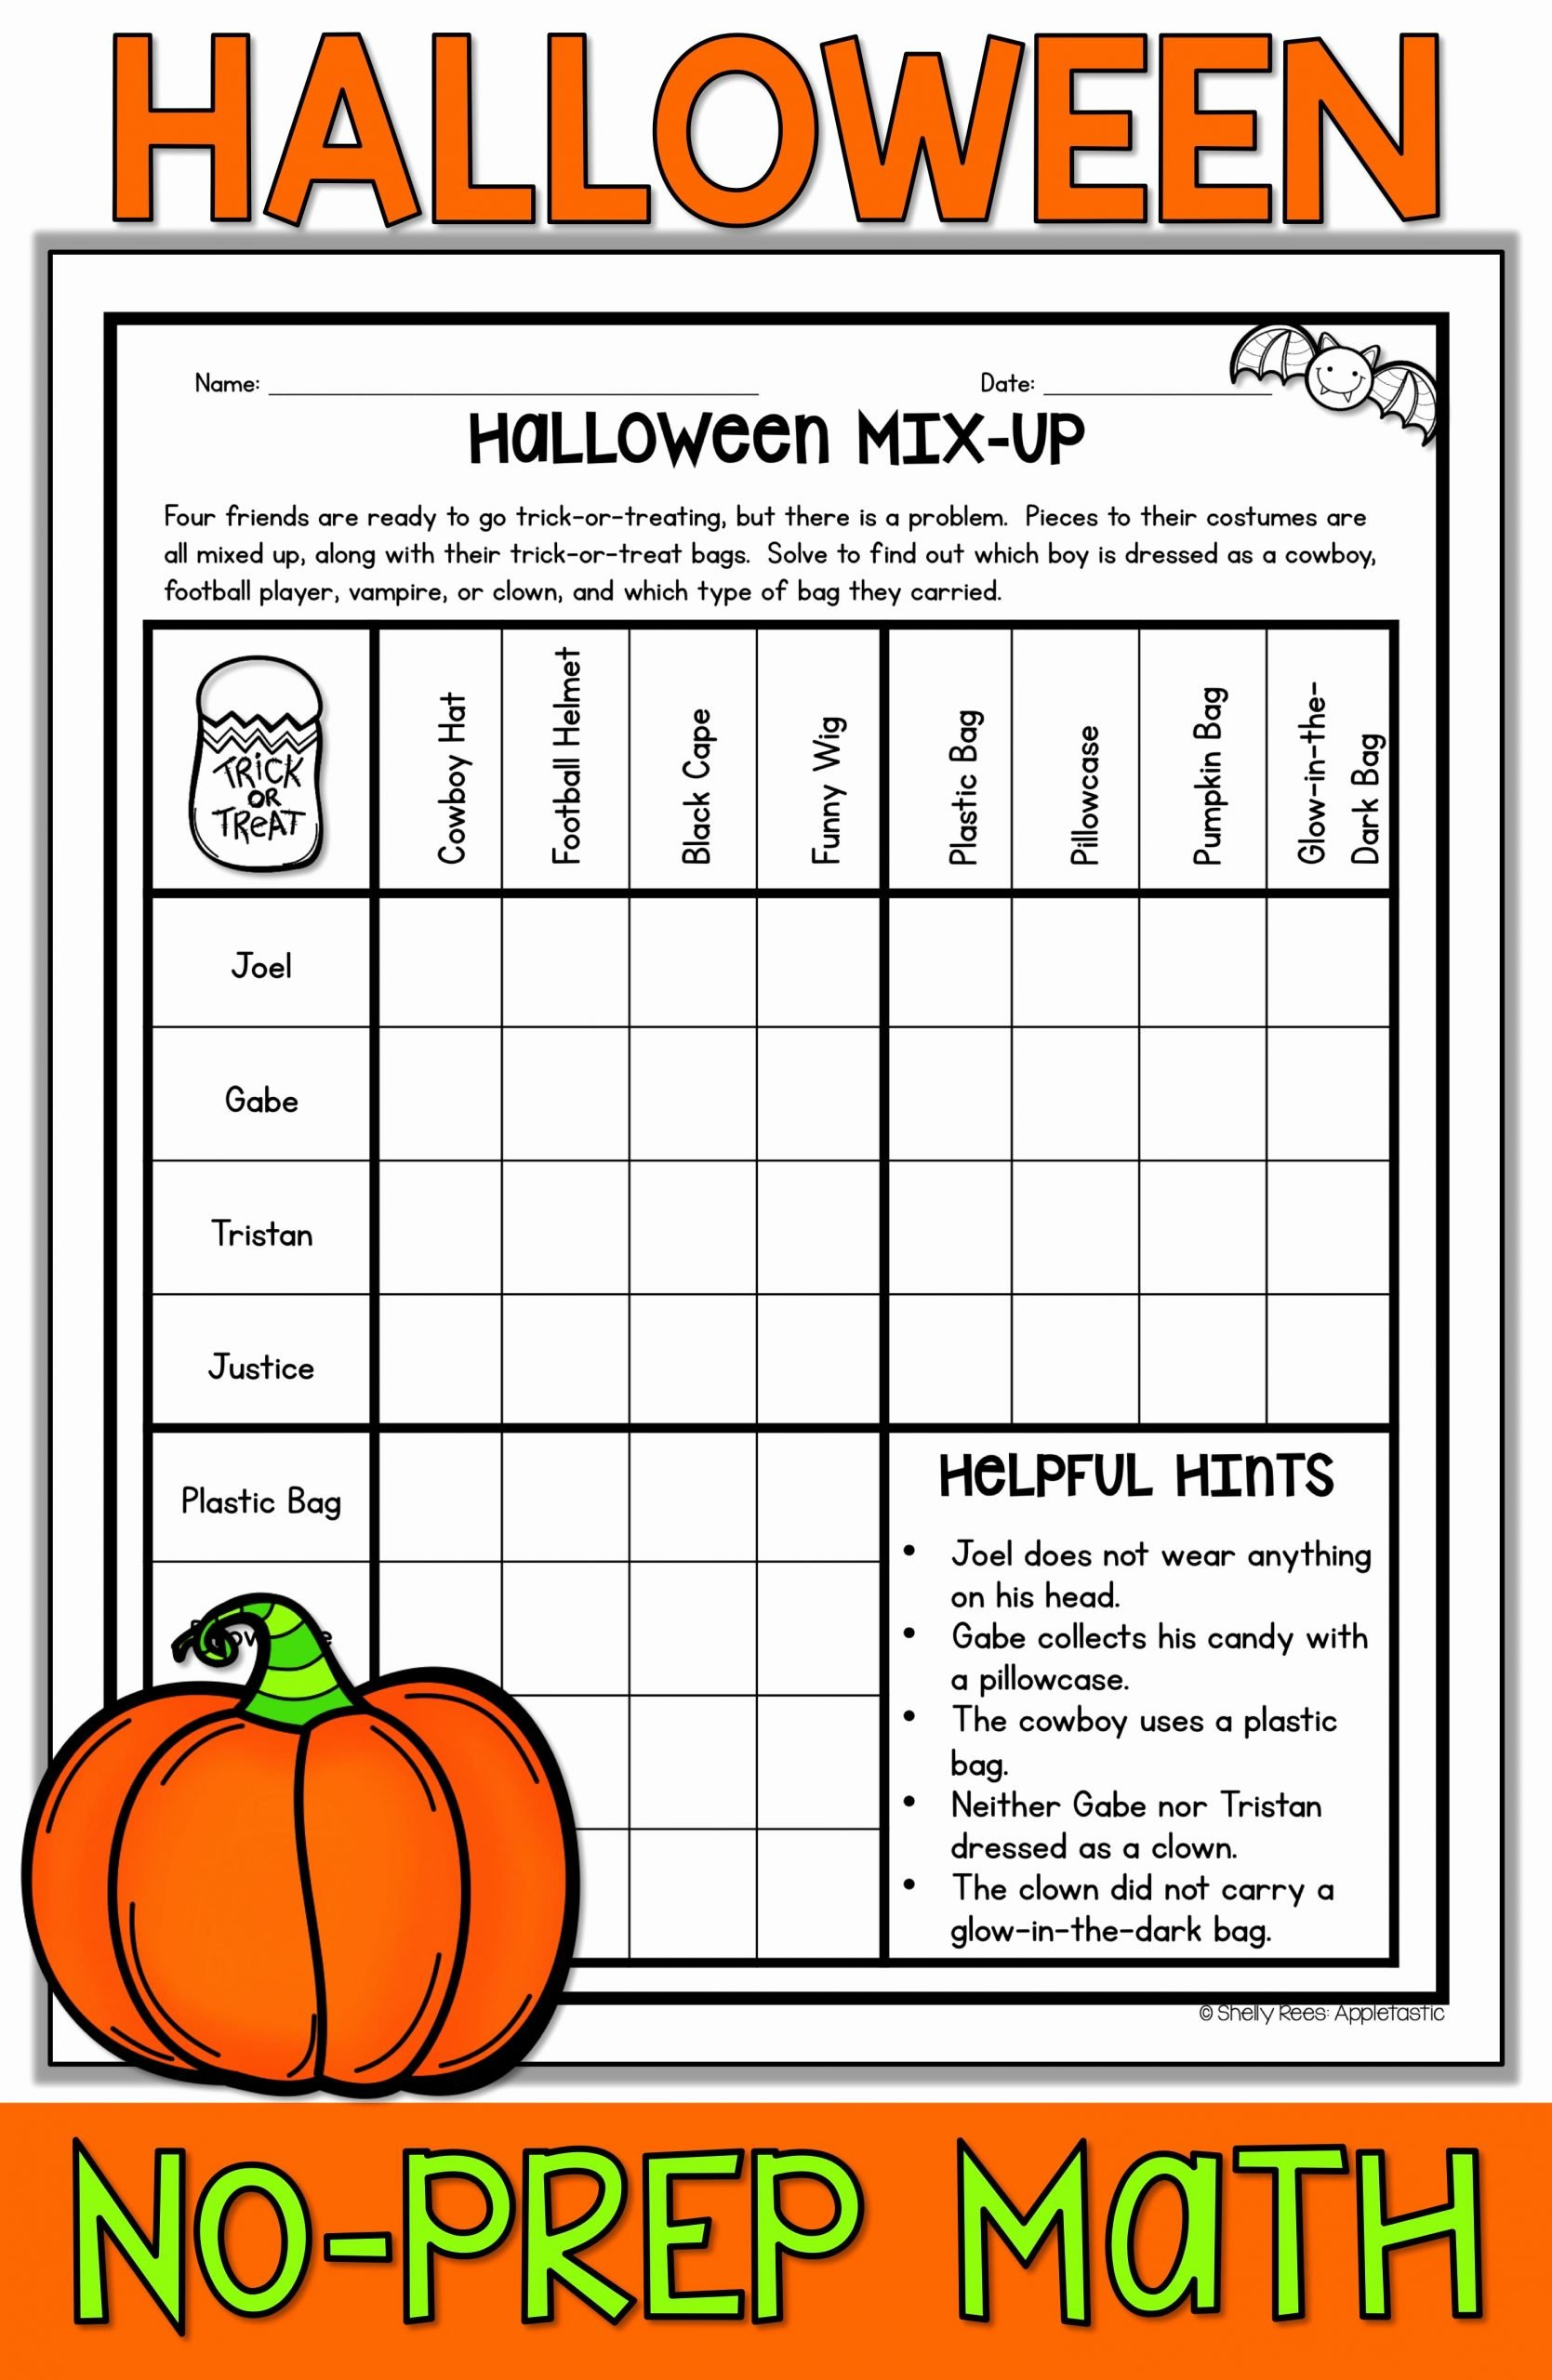 Halloween Math Worksheets Middle School Printable Halloween Math Worksheets